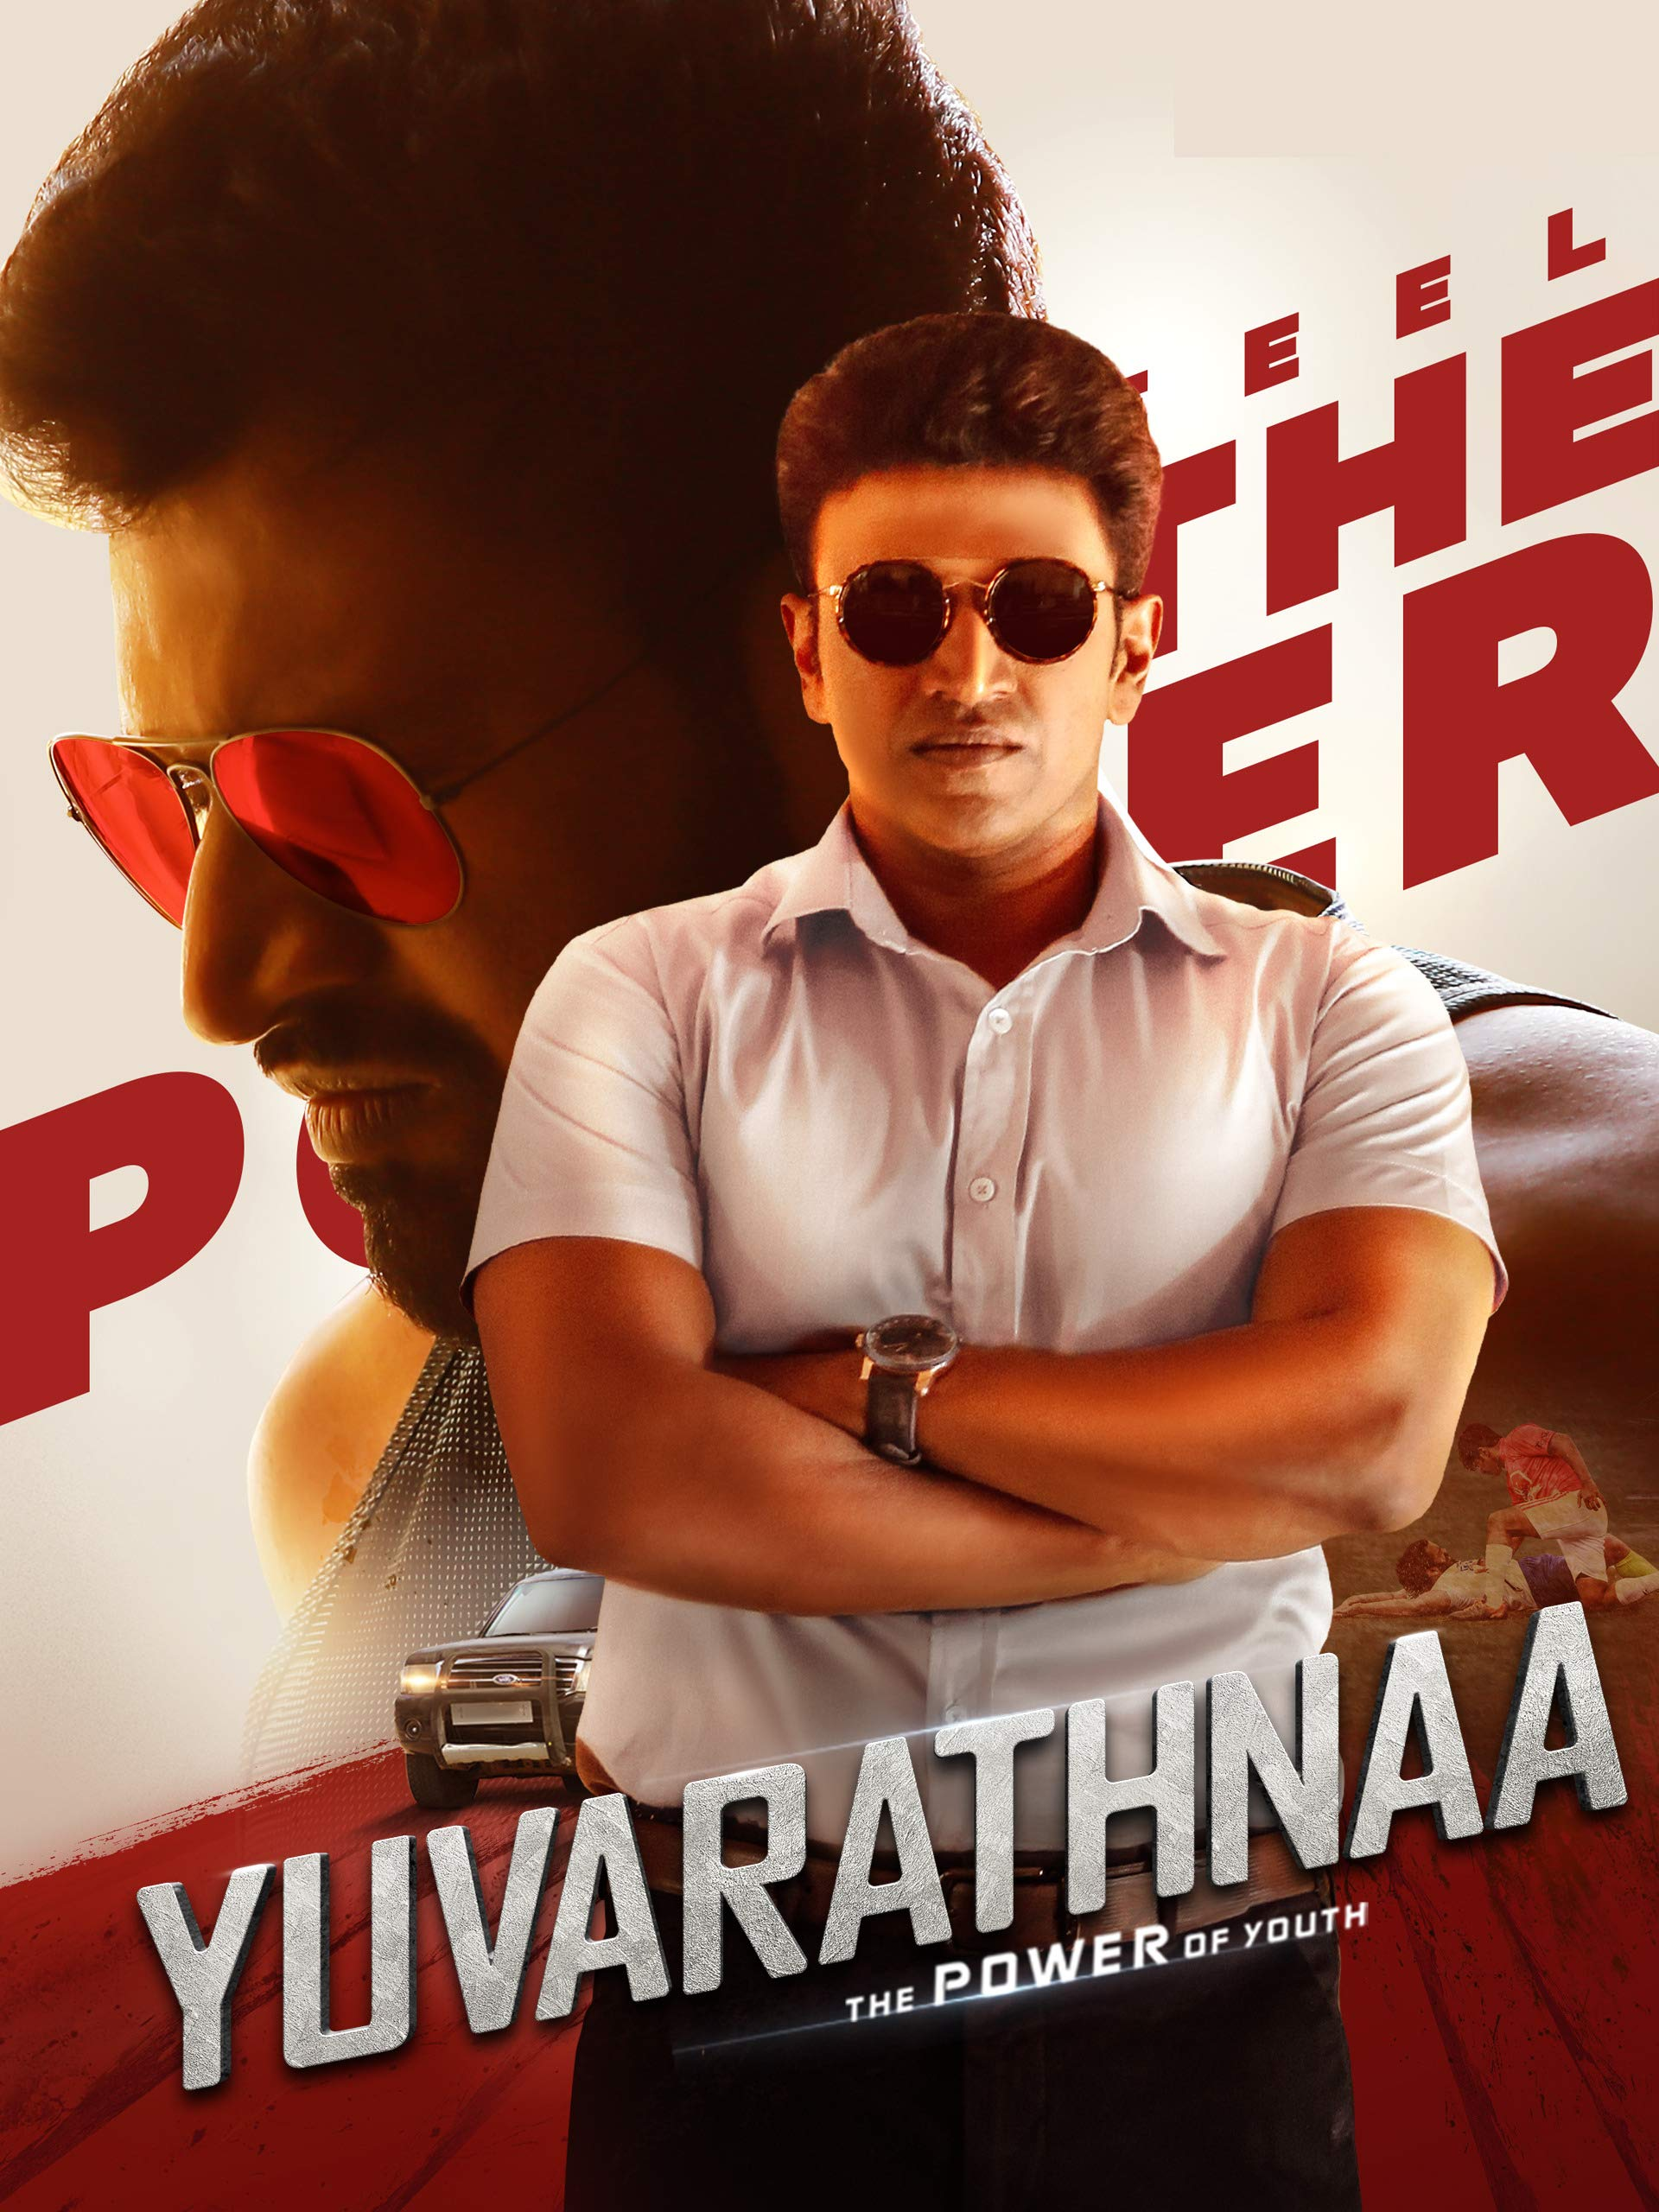 Yuvarathnaa 2021 Hindi Dubbed Movie 1080p HDRip ESub 2.8GB x264 AAC